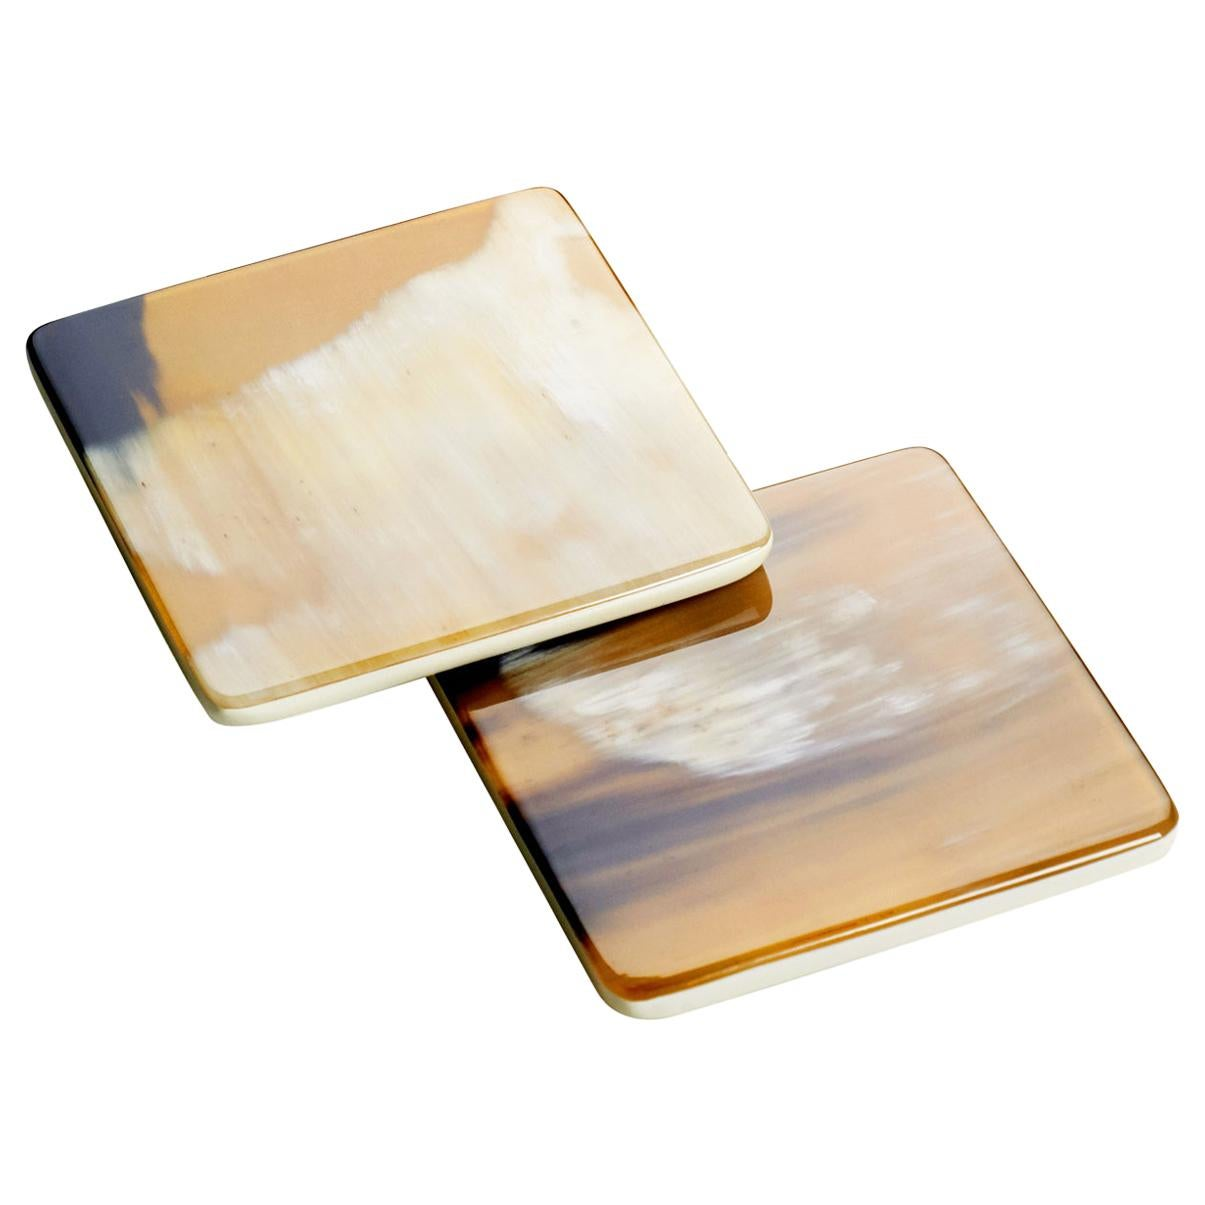 Set of 2 Square Coasters in Corno Italiano and Ivory Lacquered Wood, Mod. 224